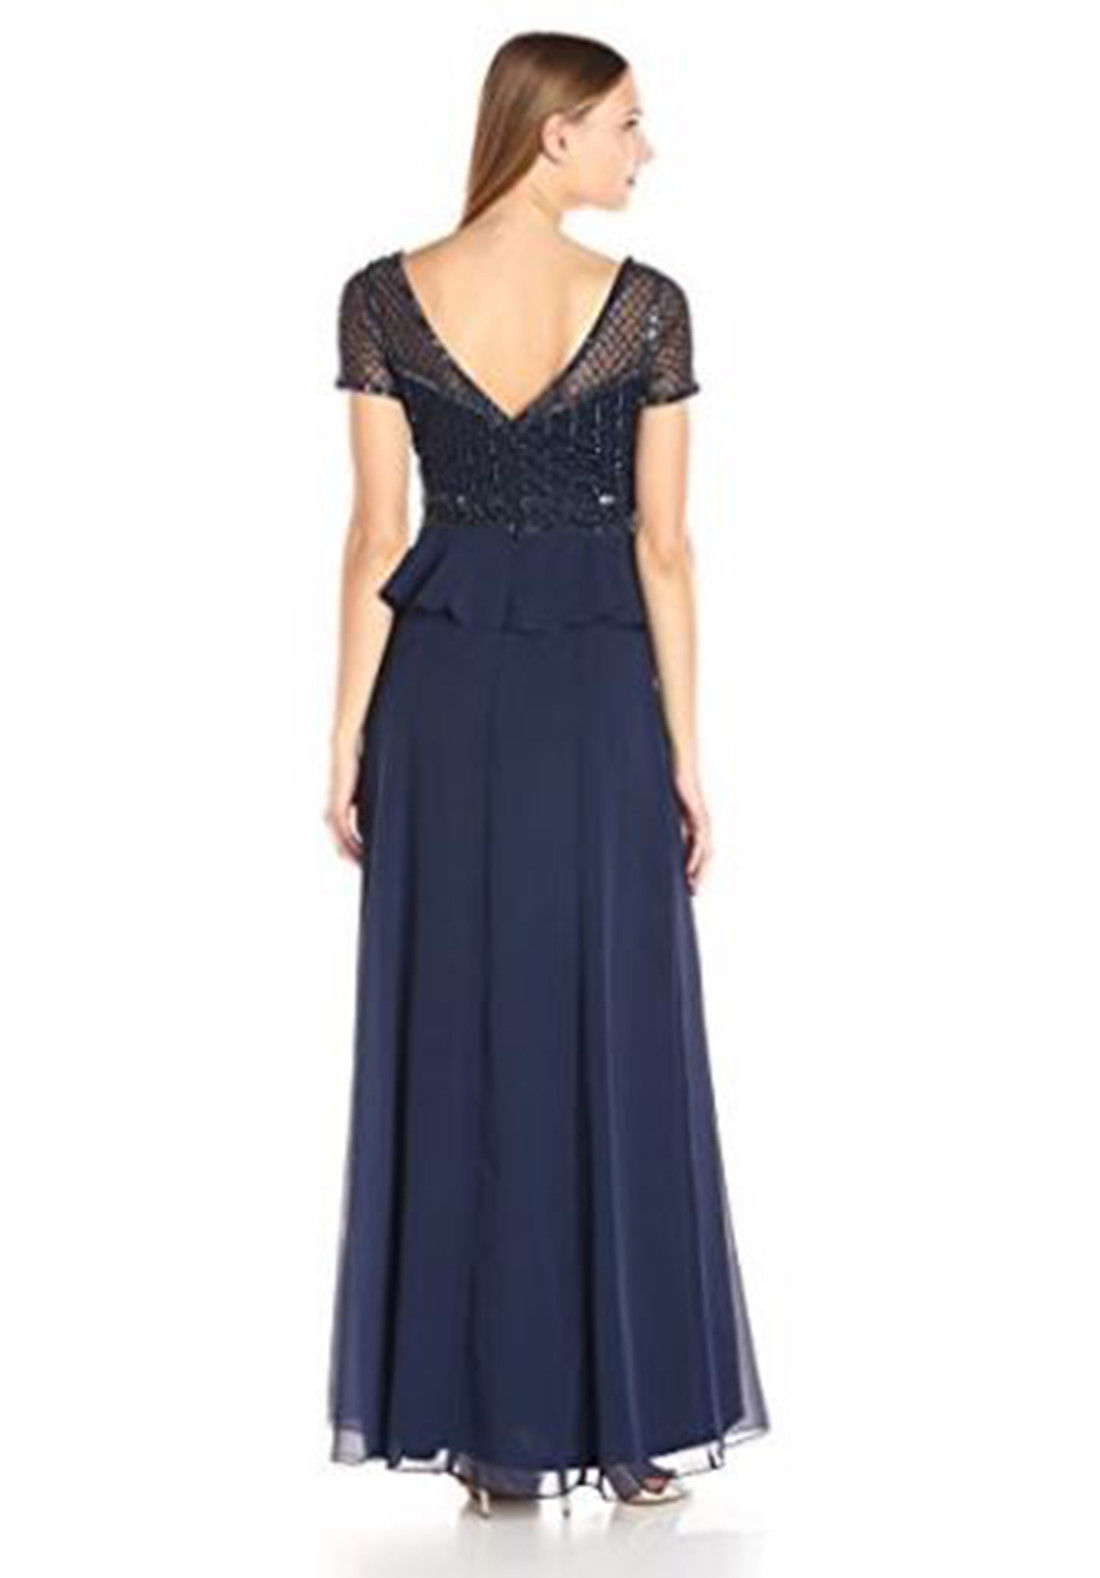 Adrianna Papell Women's Short Sleeve Gown with Beaded Bodice and Ruffle Skirt